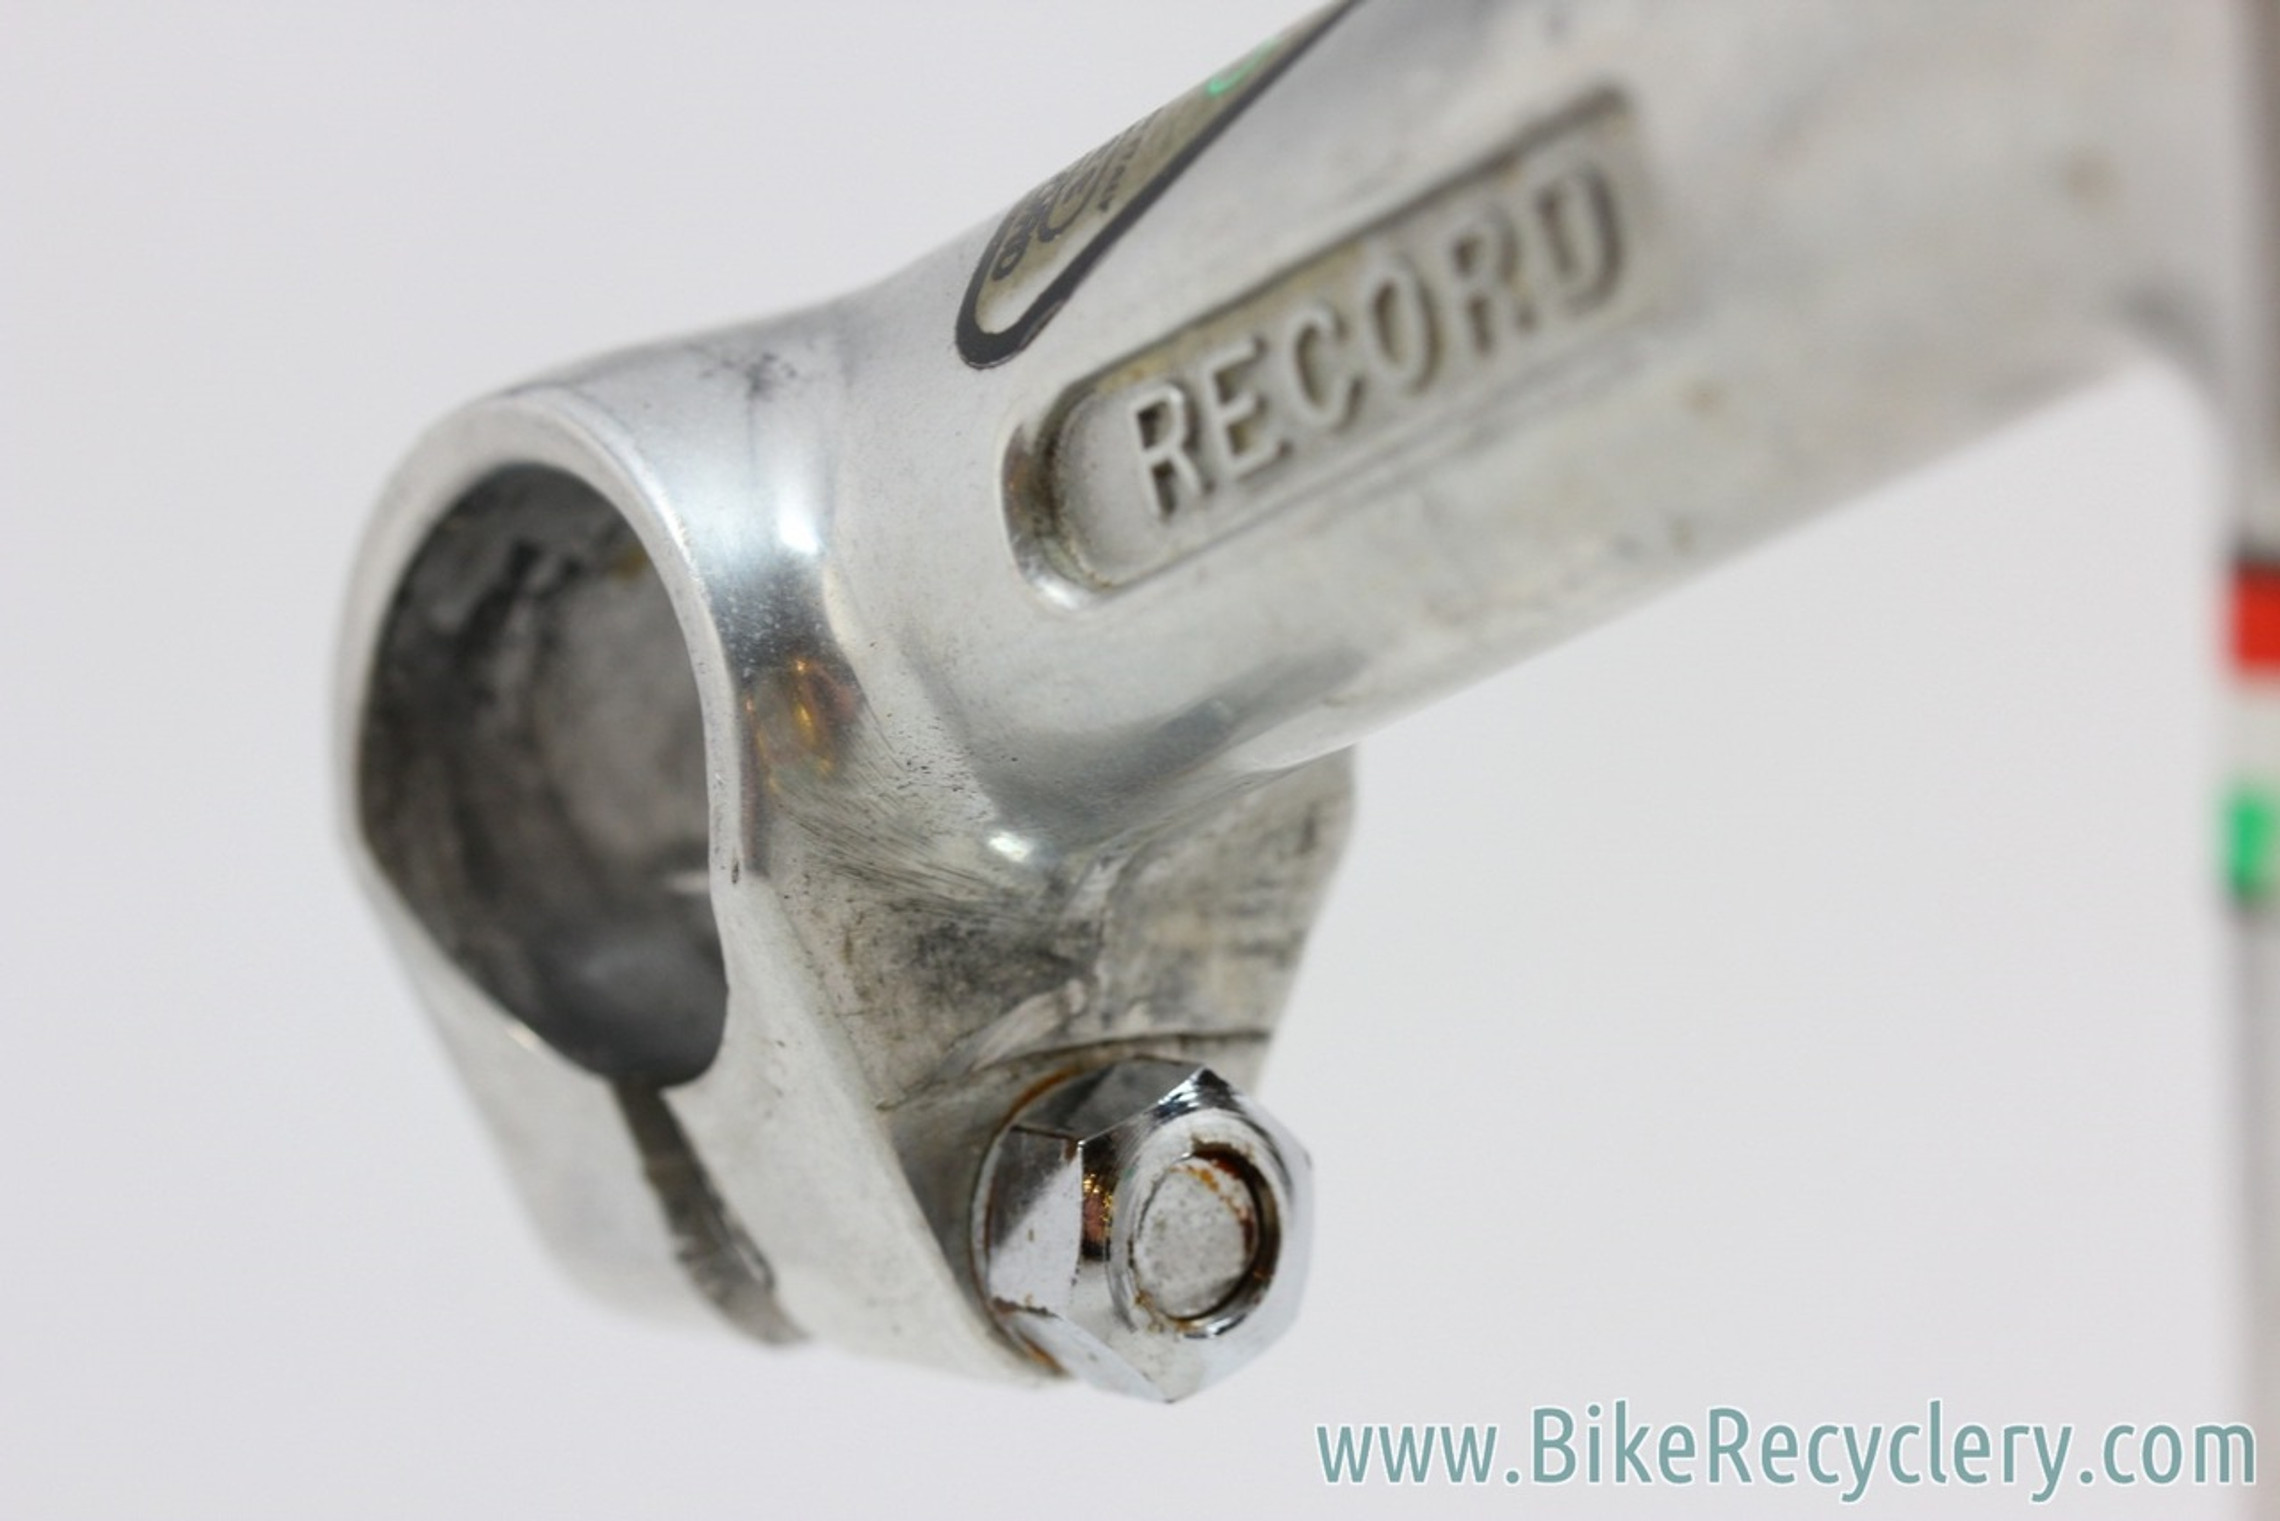 3ttt Record Strada Quill Stem: 1st Gen 1960's or early 70's - 105mm x 26mm (EXC)